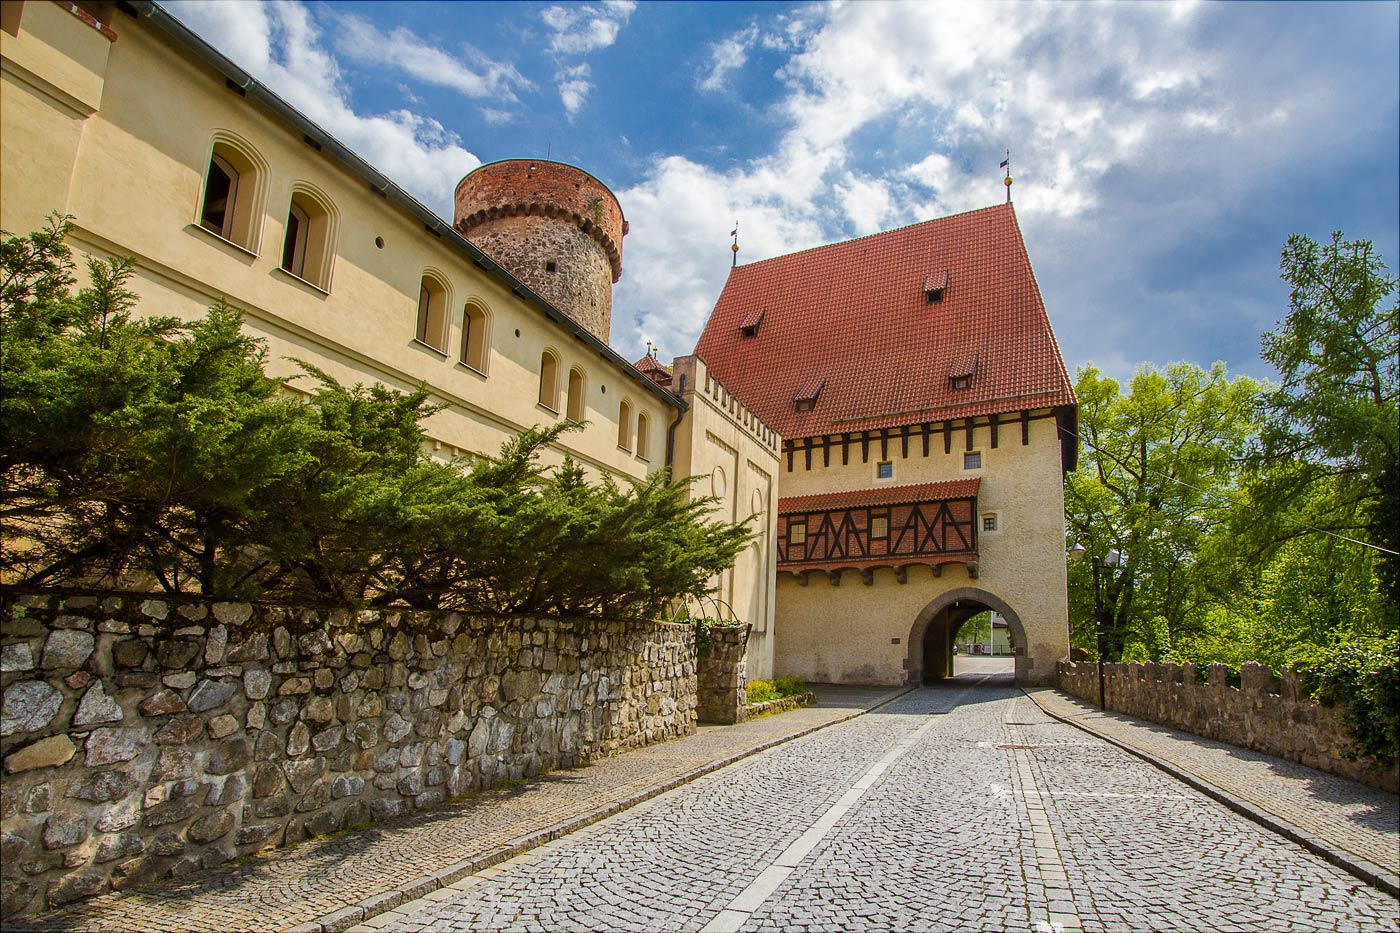 http://countryczech.com/wp-content/uploads/2016/06/photos/20160514-150322_Tabor-HDR.jpg